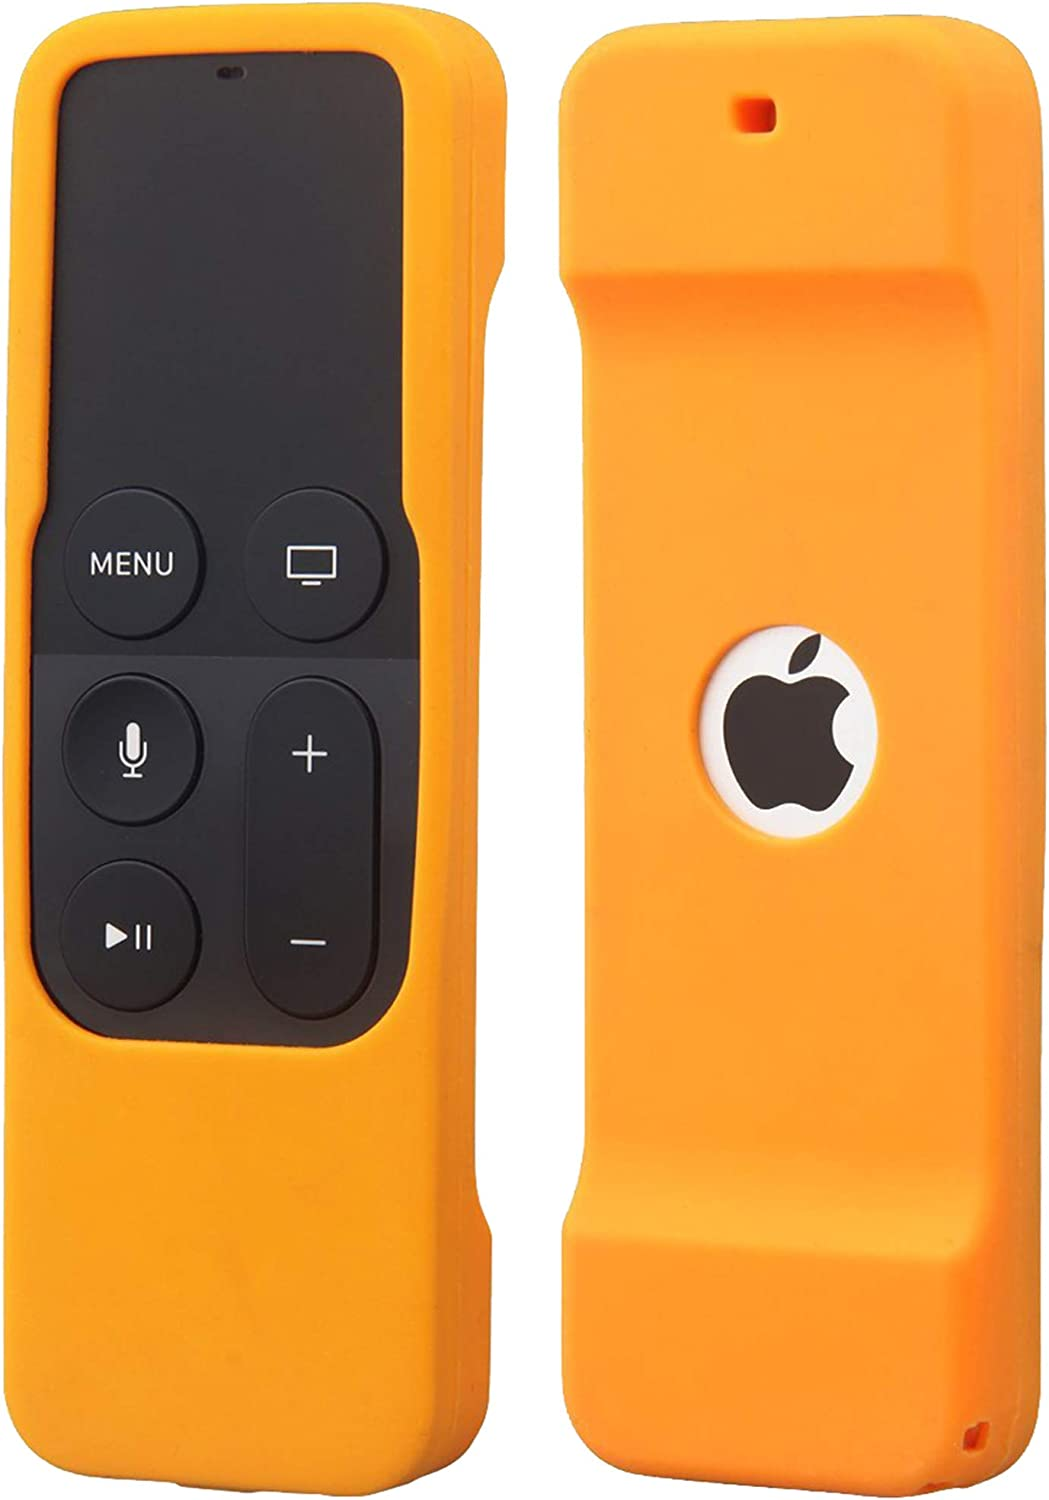 Remote Case Compatible with Apple TV 4K (5th) and 4th Generation, Auswaur Shock Proof Silicone Remote Cover Case Compatible with Apple TV 4th Gen 4K 5th Siri Remote Controller - Orange